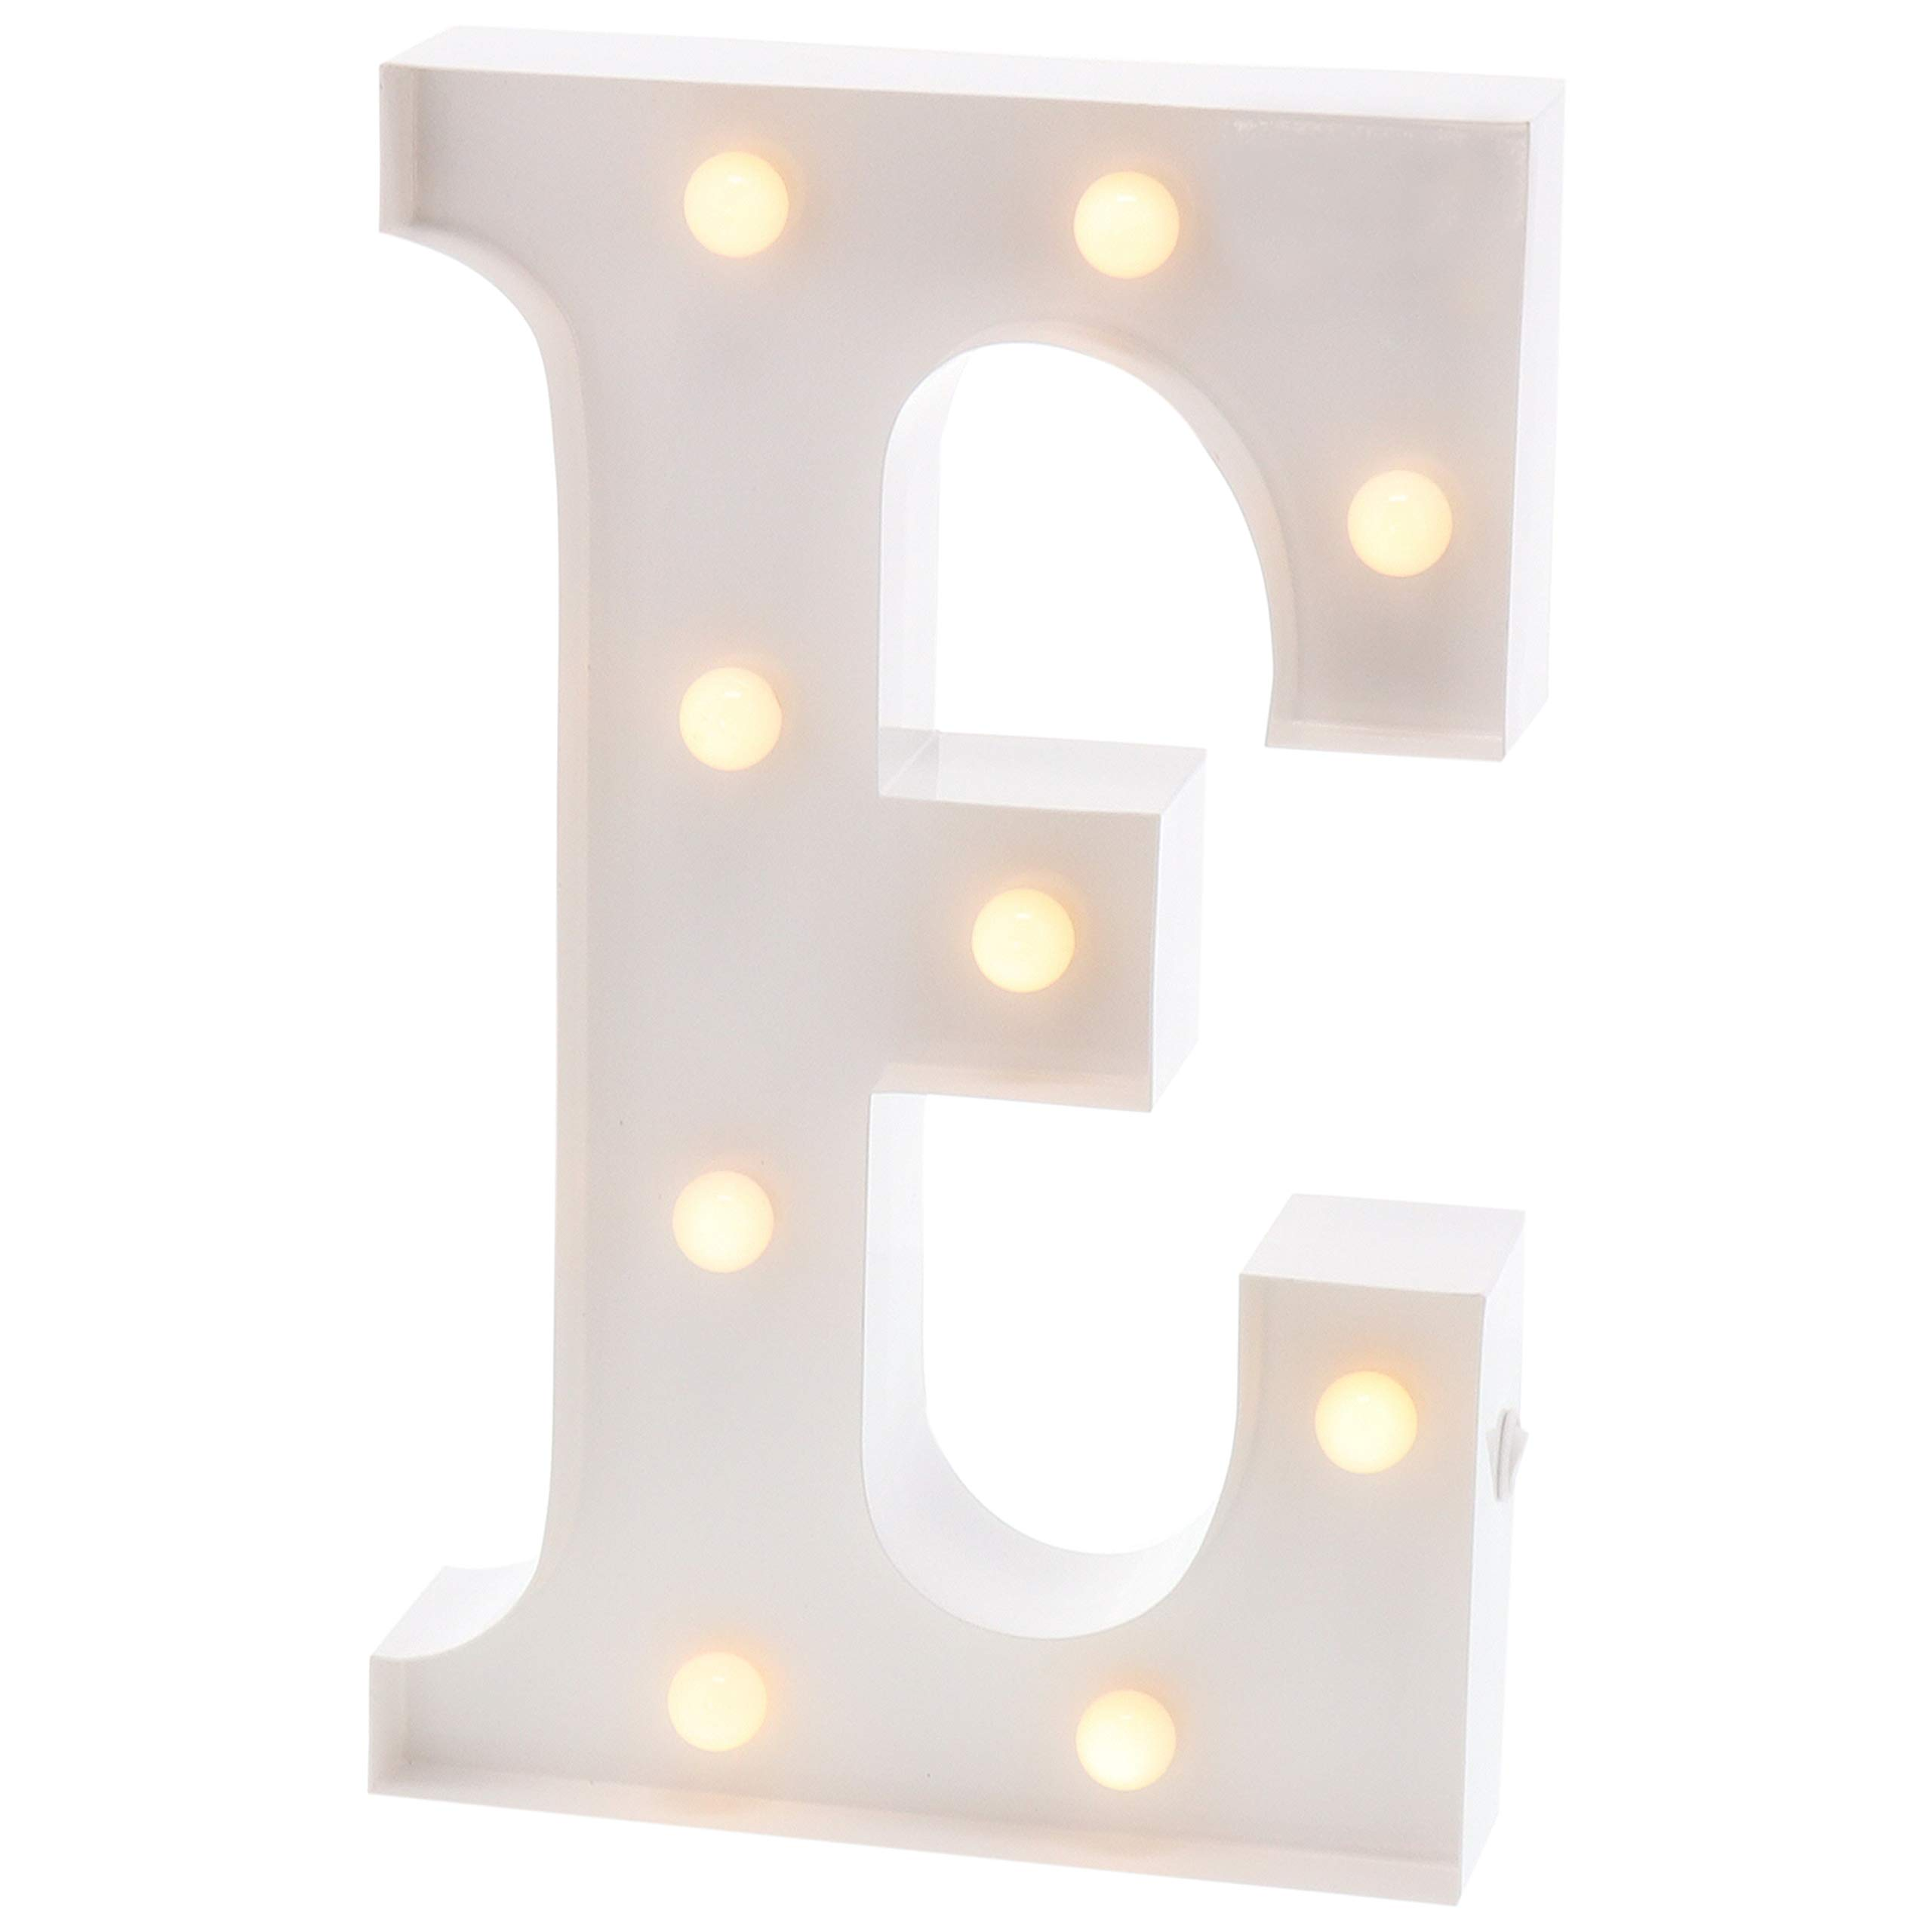 Barnyard Designs Metal Marquee Letter E Light Up Wall Initial Wedding, Bar, Home and Nursery Letter Decoration 12'' (White) by Barnyard Designs